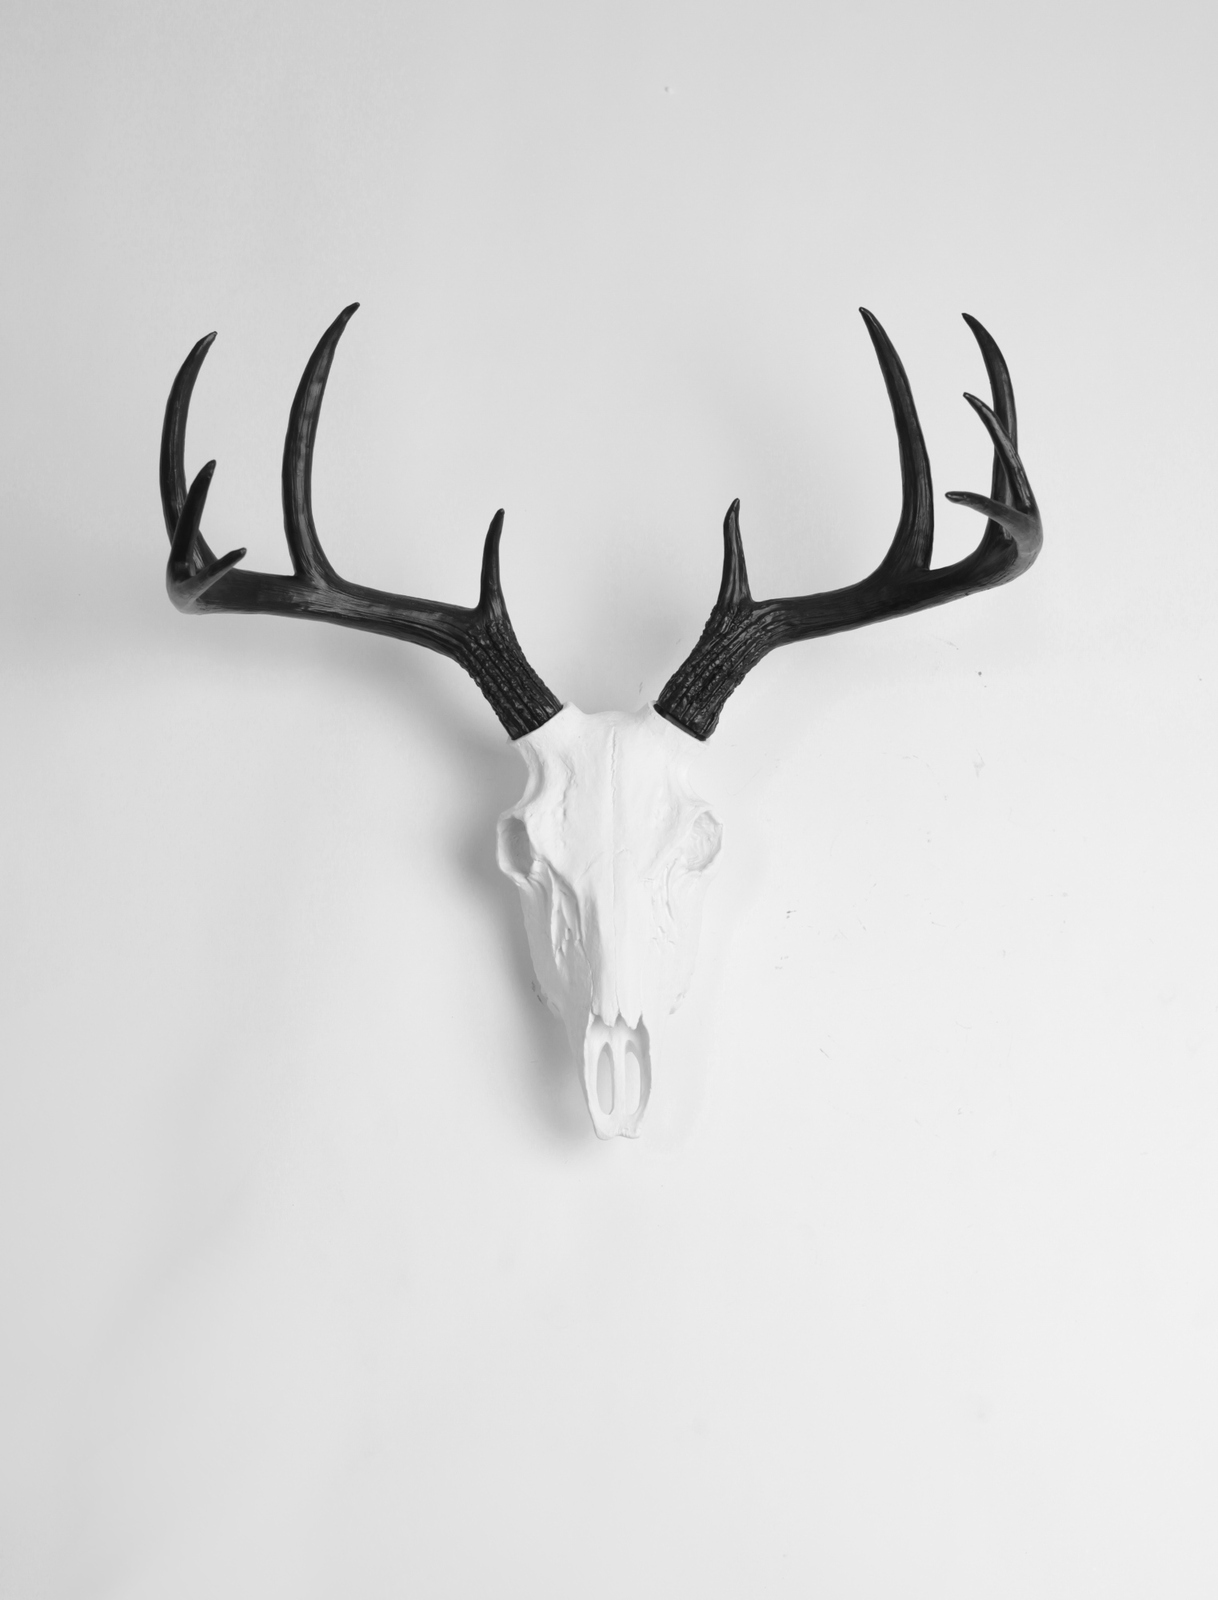 Fake Deer Skull And Antlers White Resin Deer Skull W Black Antlers Faux Stag Decor